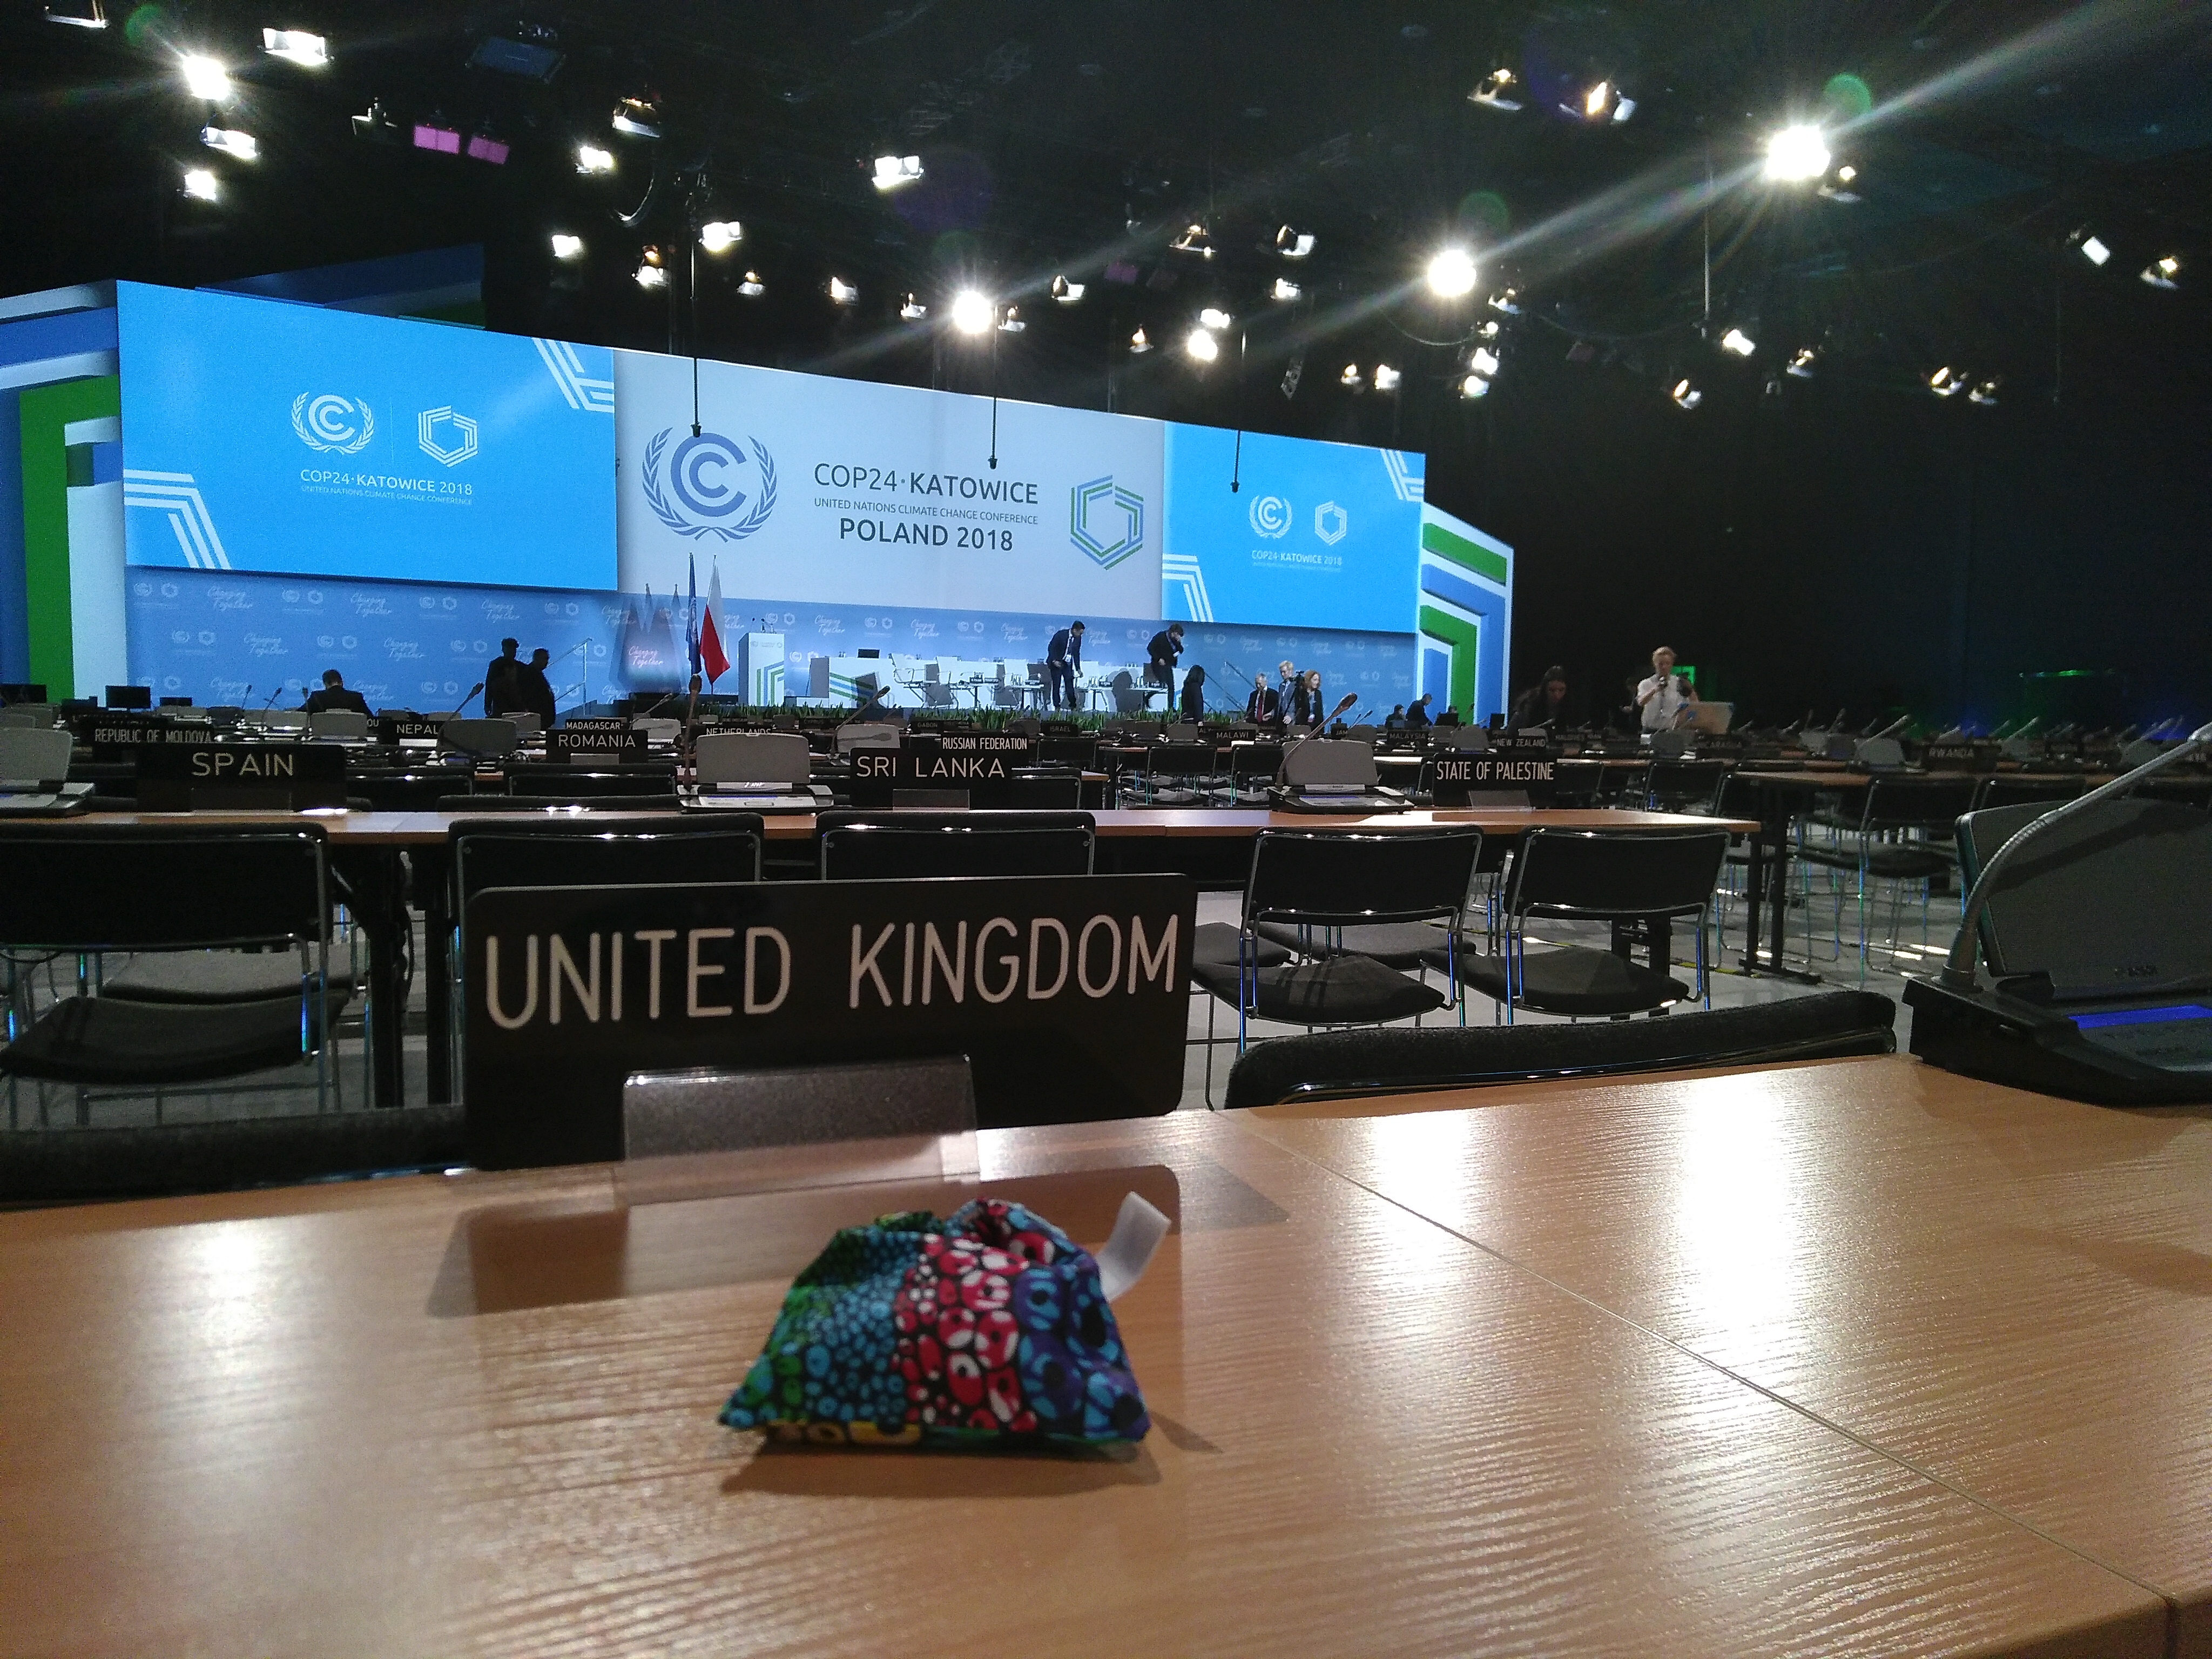 A fabric bag on a desk in a large conference room of tables, chairs, screens. The bag is in front of a sign saying United Kingdom and you can see other countries in the distance.